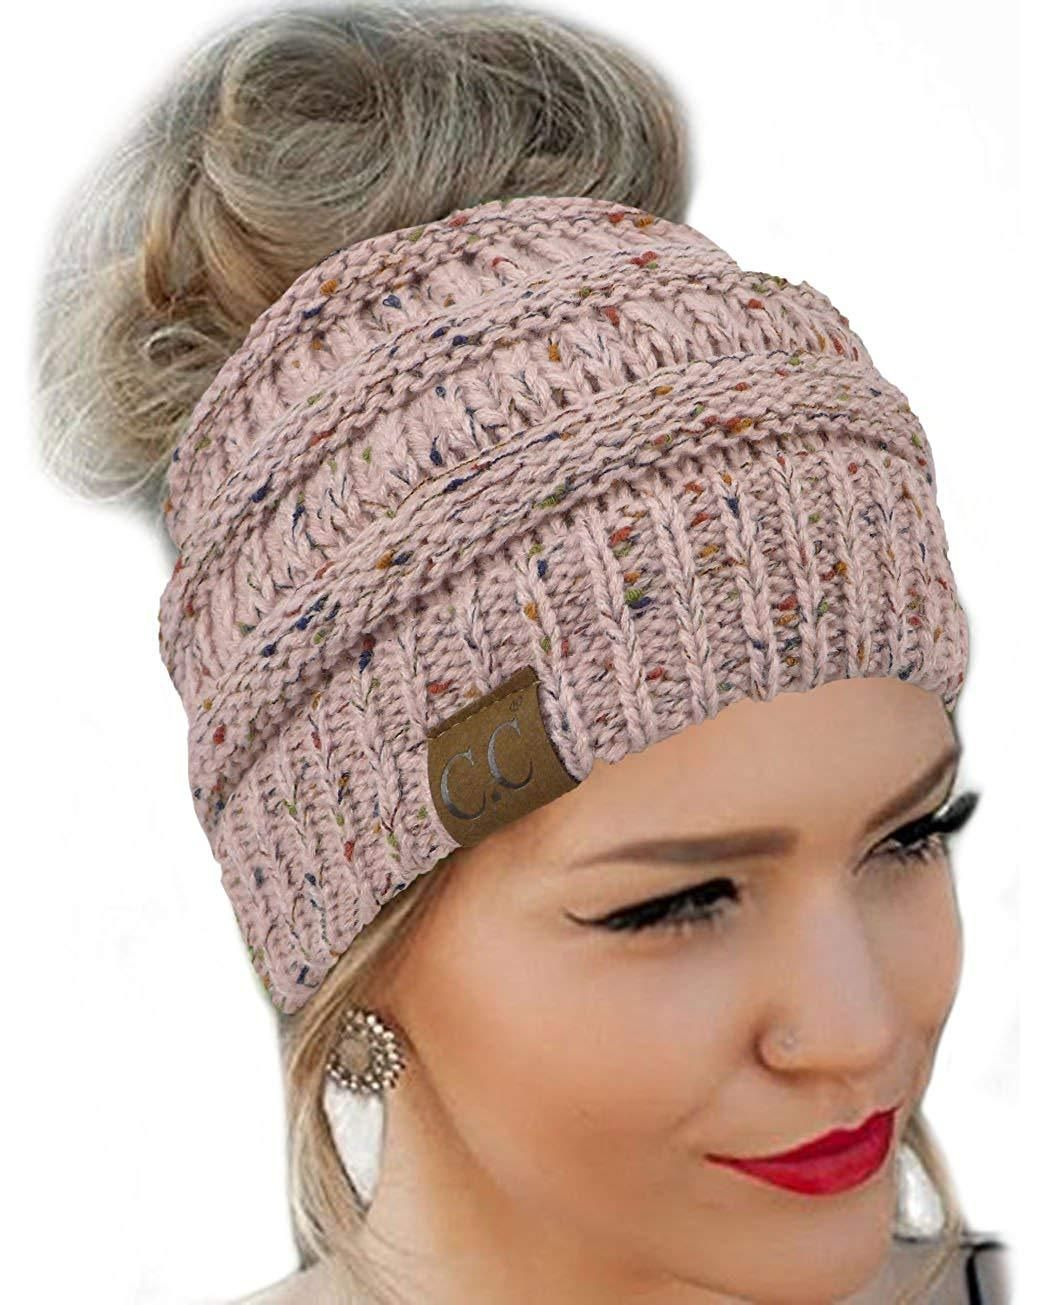 4b8a1e16d CC Quality Knit Messy Bun Hat Beanie | Products | Beanie, Messy bun ...